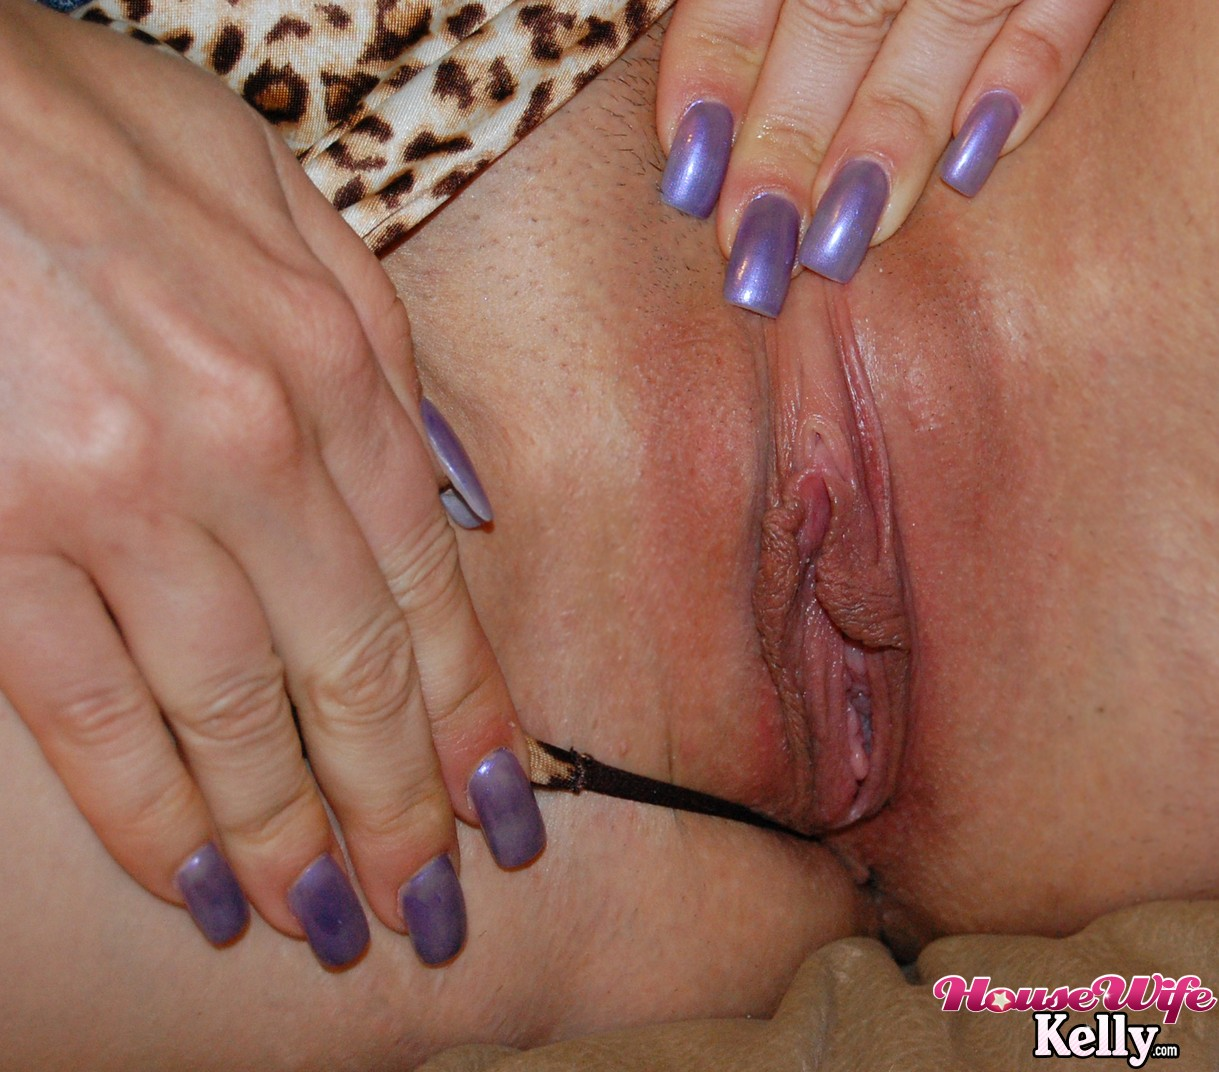 and wild homemade sex videos and pics at housewifekelly com